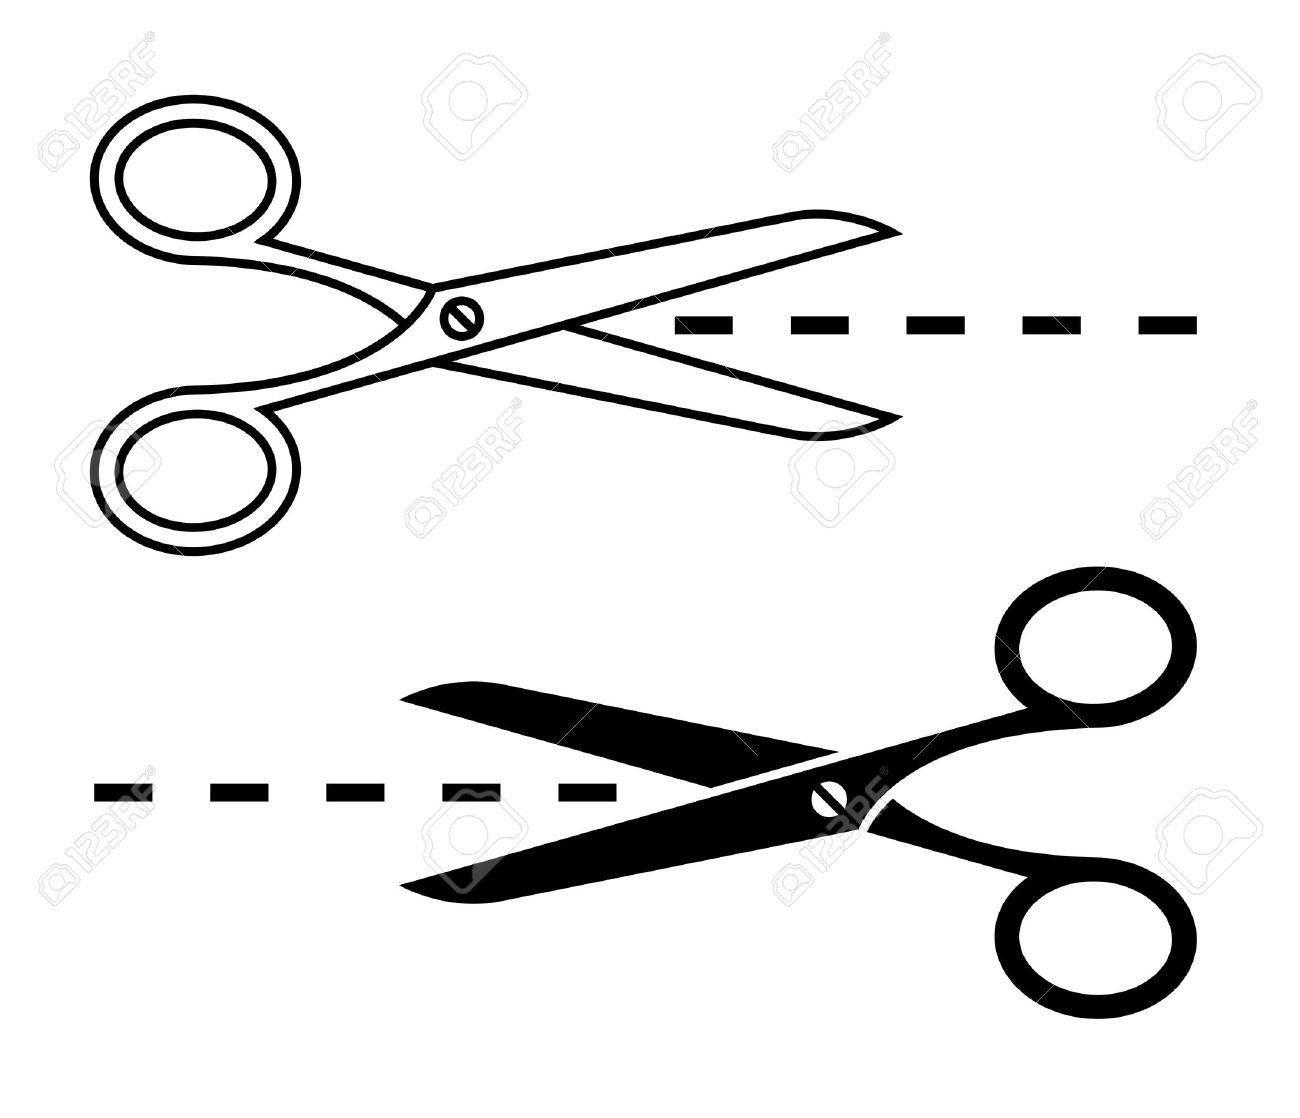 vector scissors with cut lines set of cutting scissors royalty free